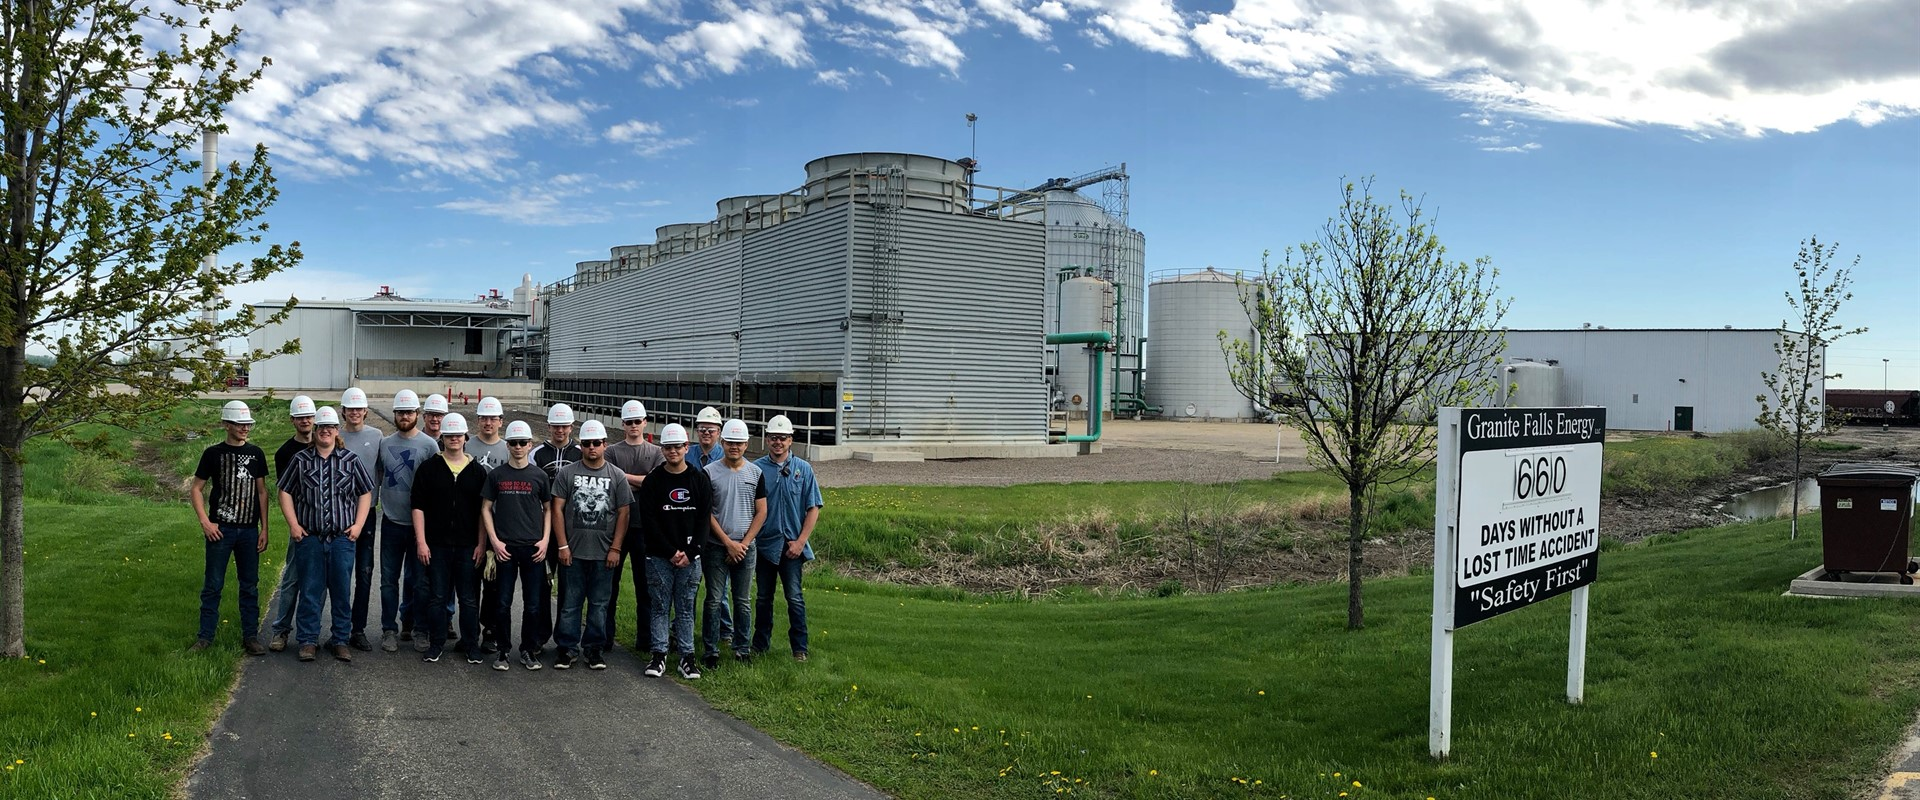 Industrial Construction Methods class toured the Granite Falls Energy Ethanol Plant